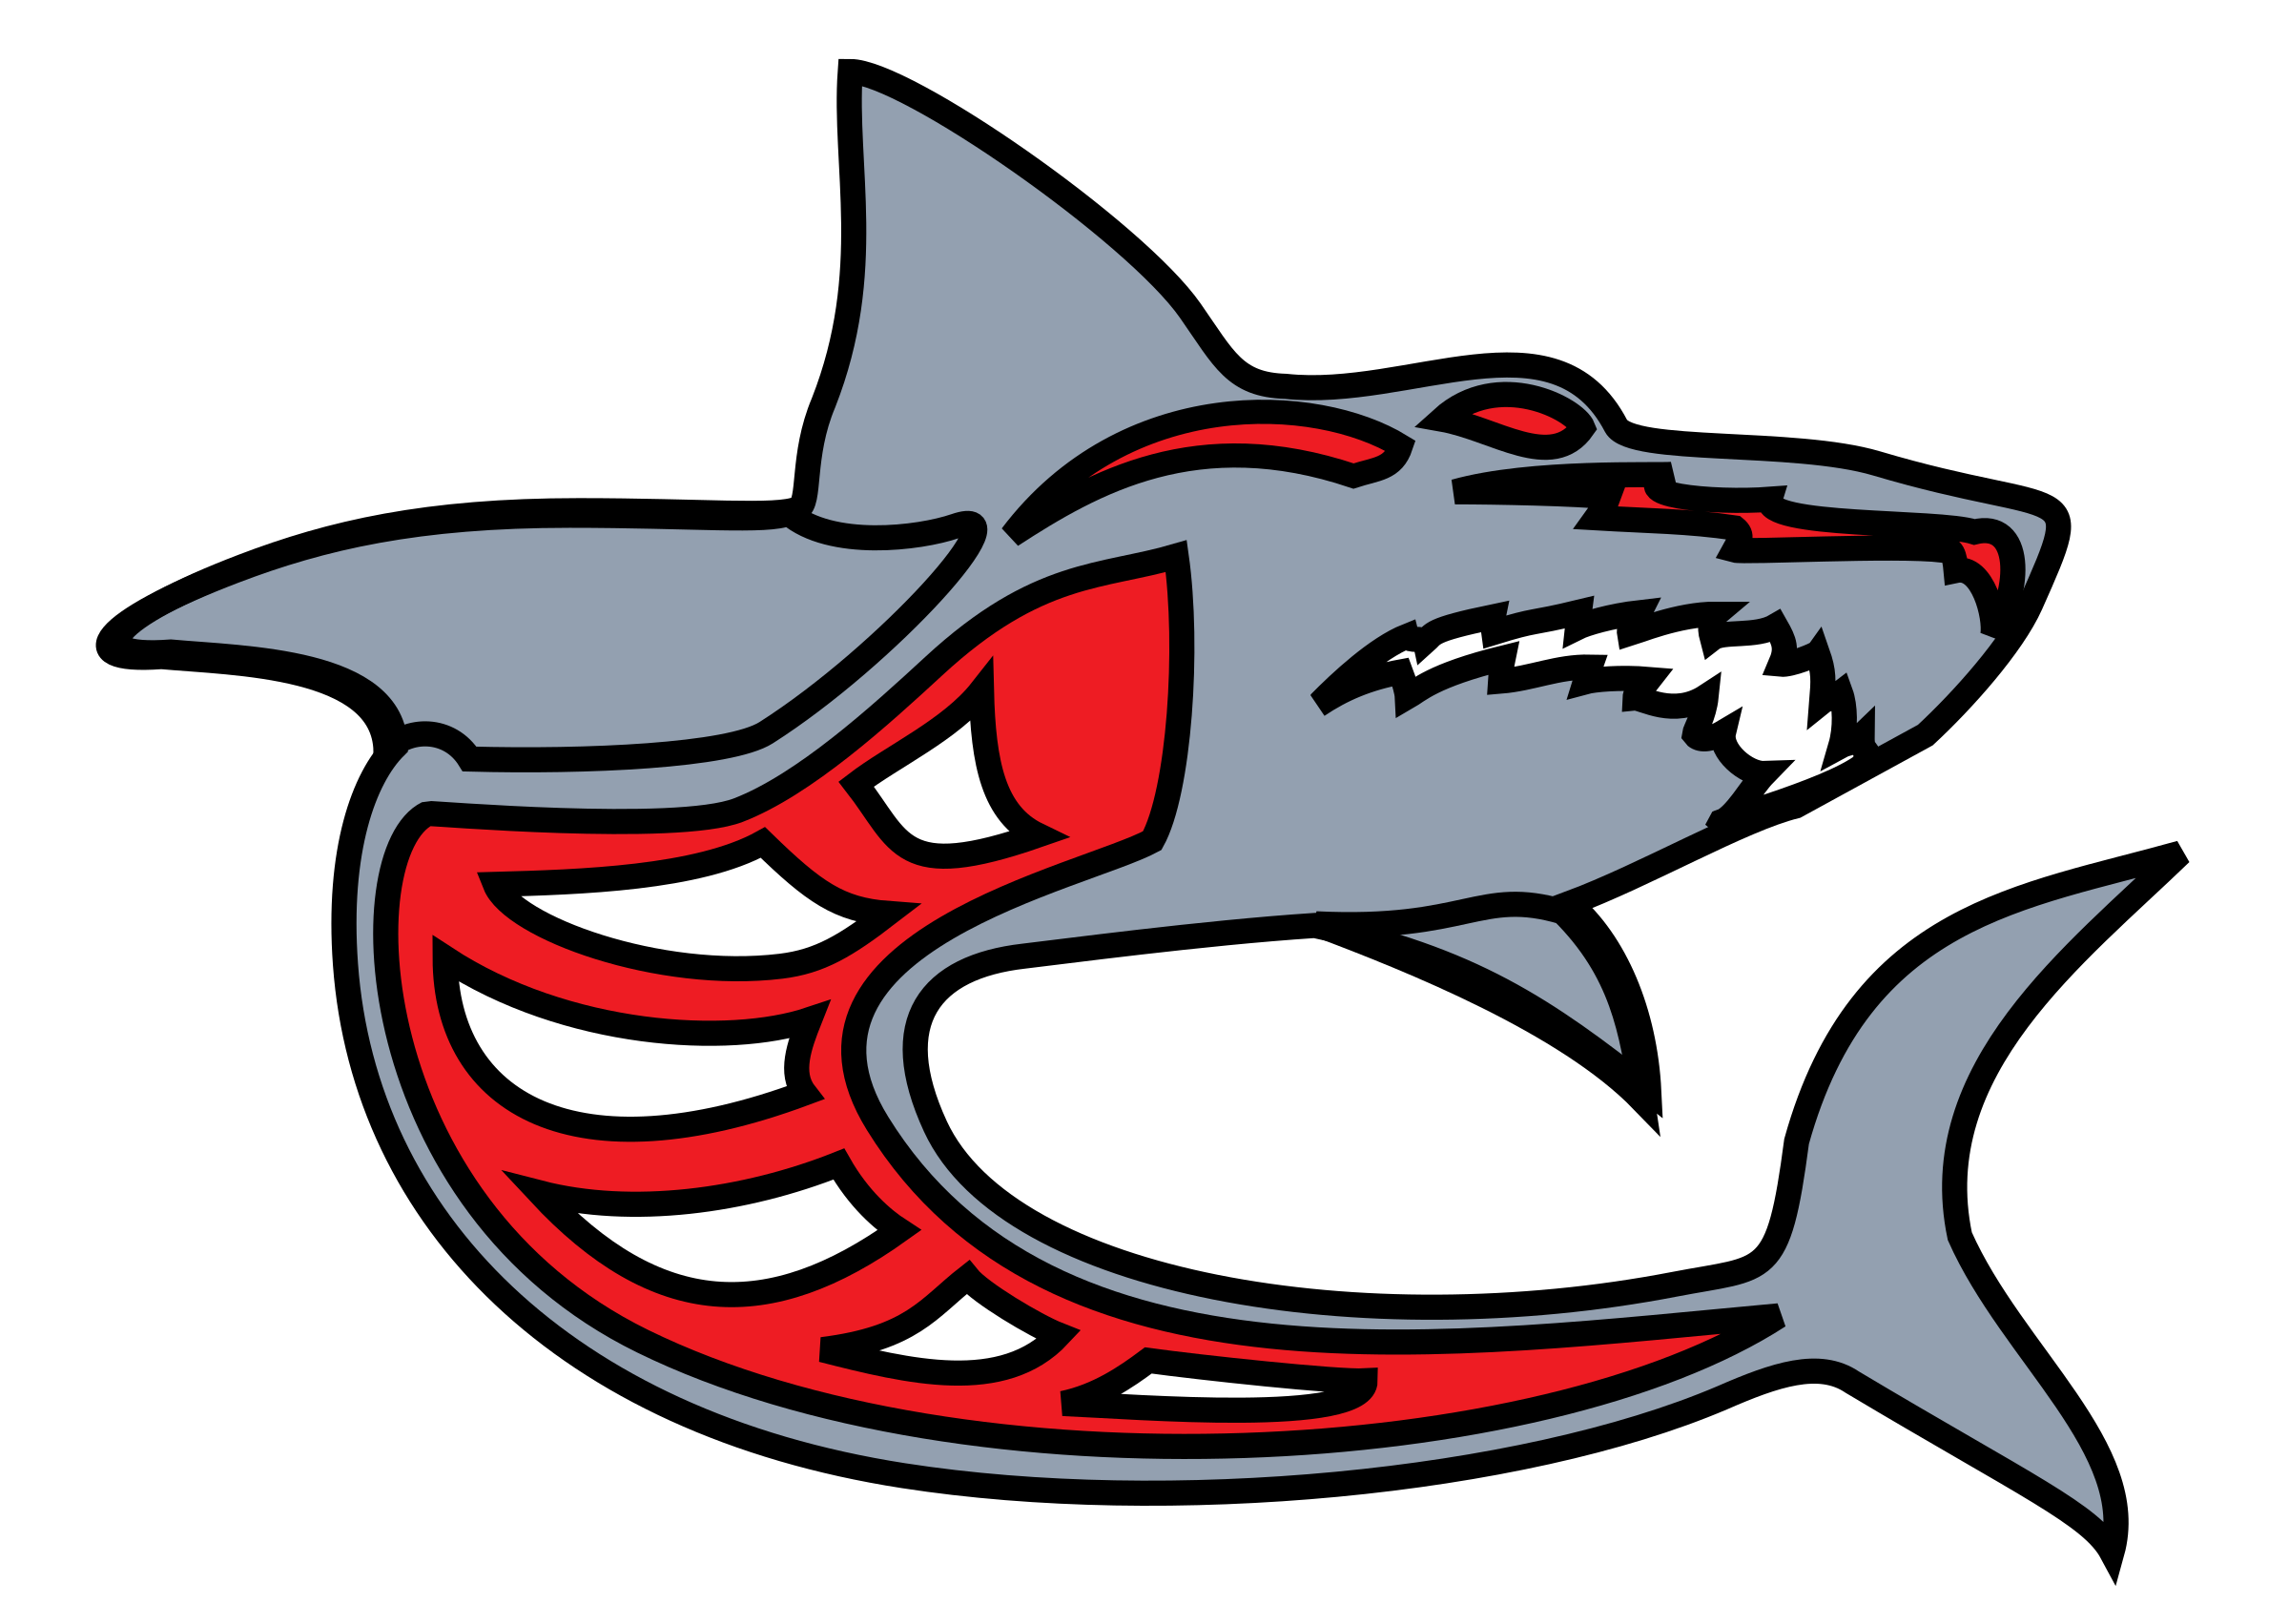 Grey red by ashed. Mouth clipart great white shark